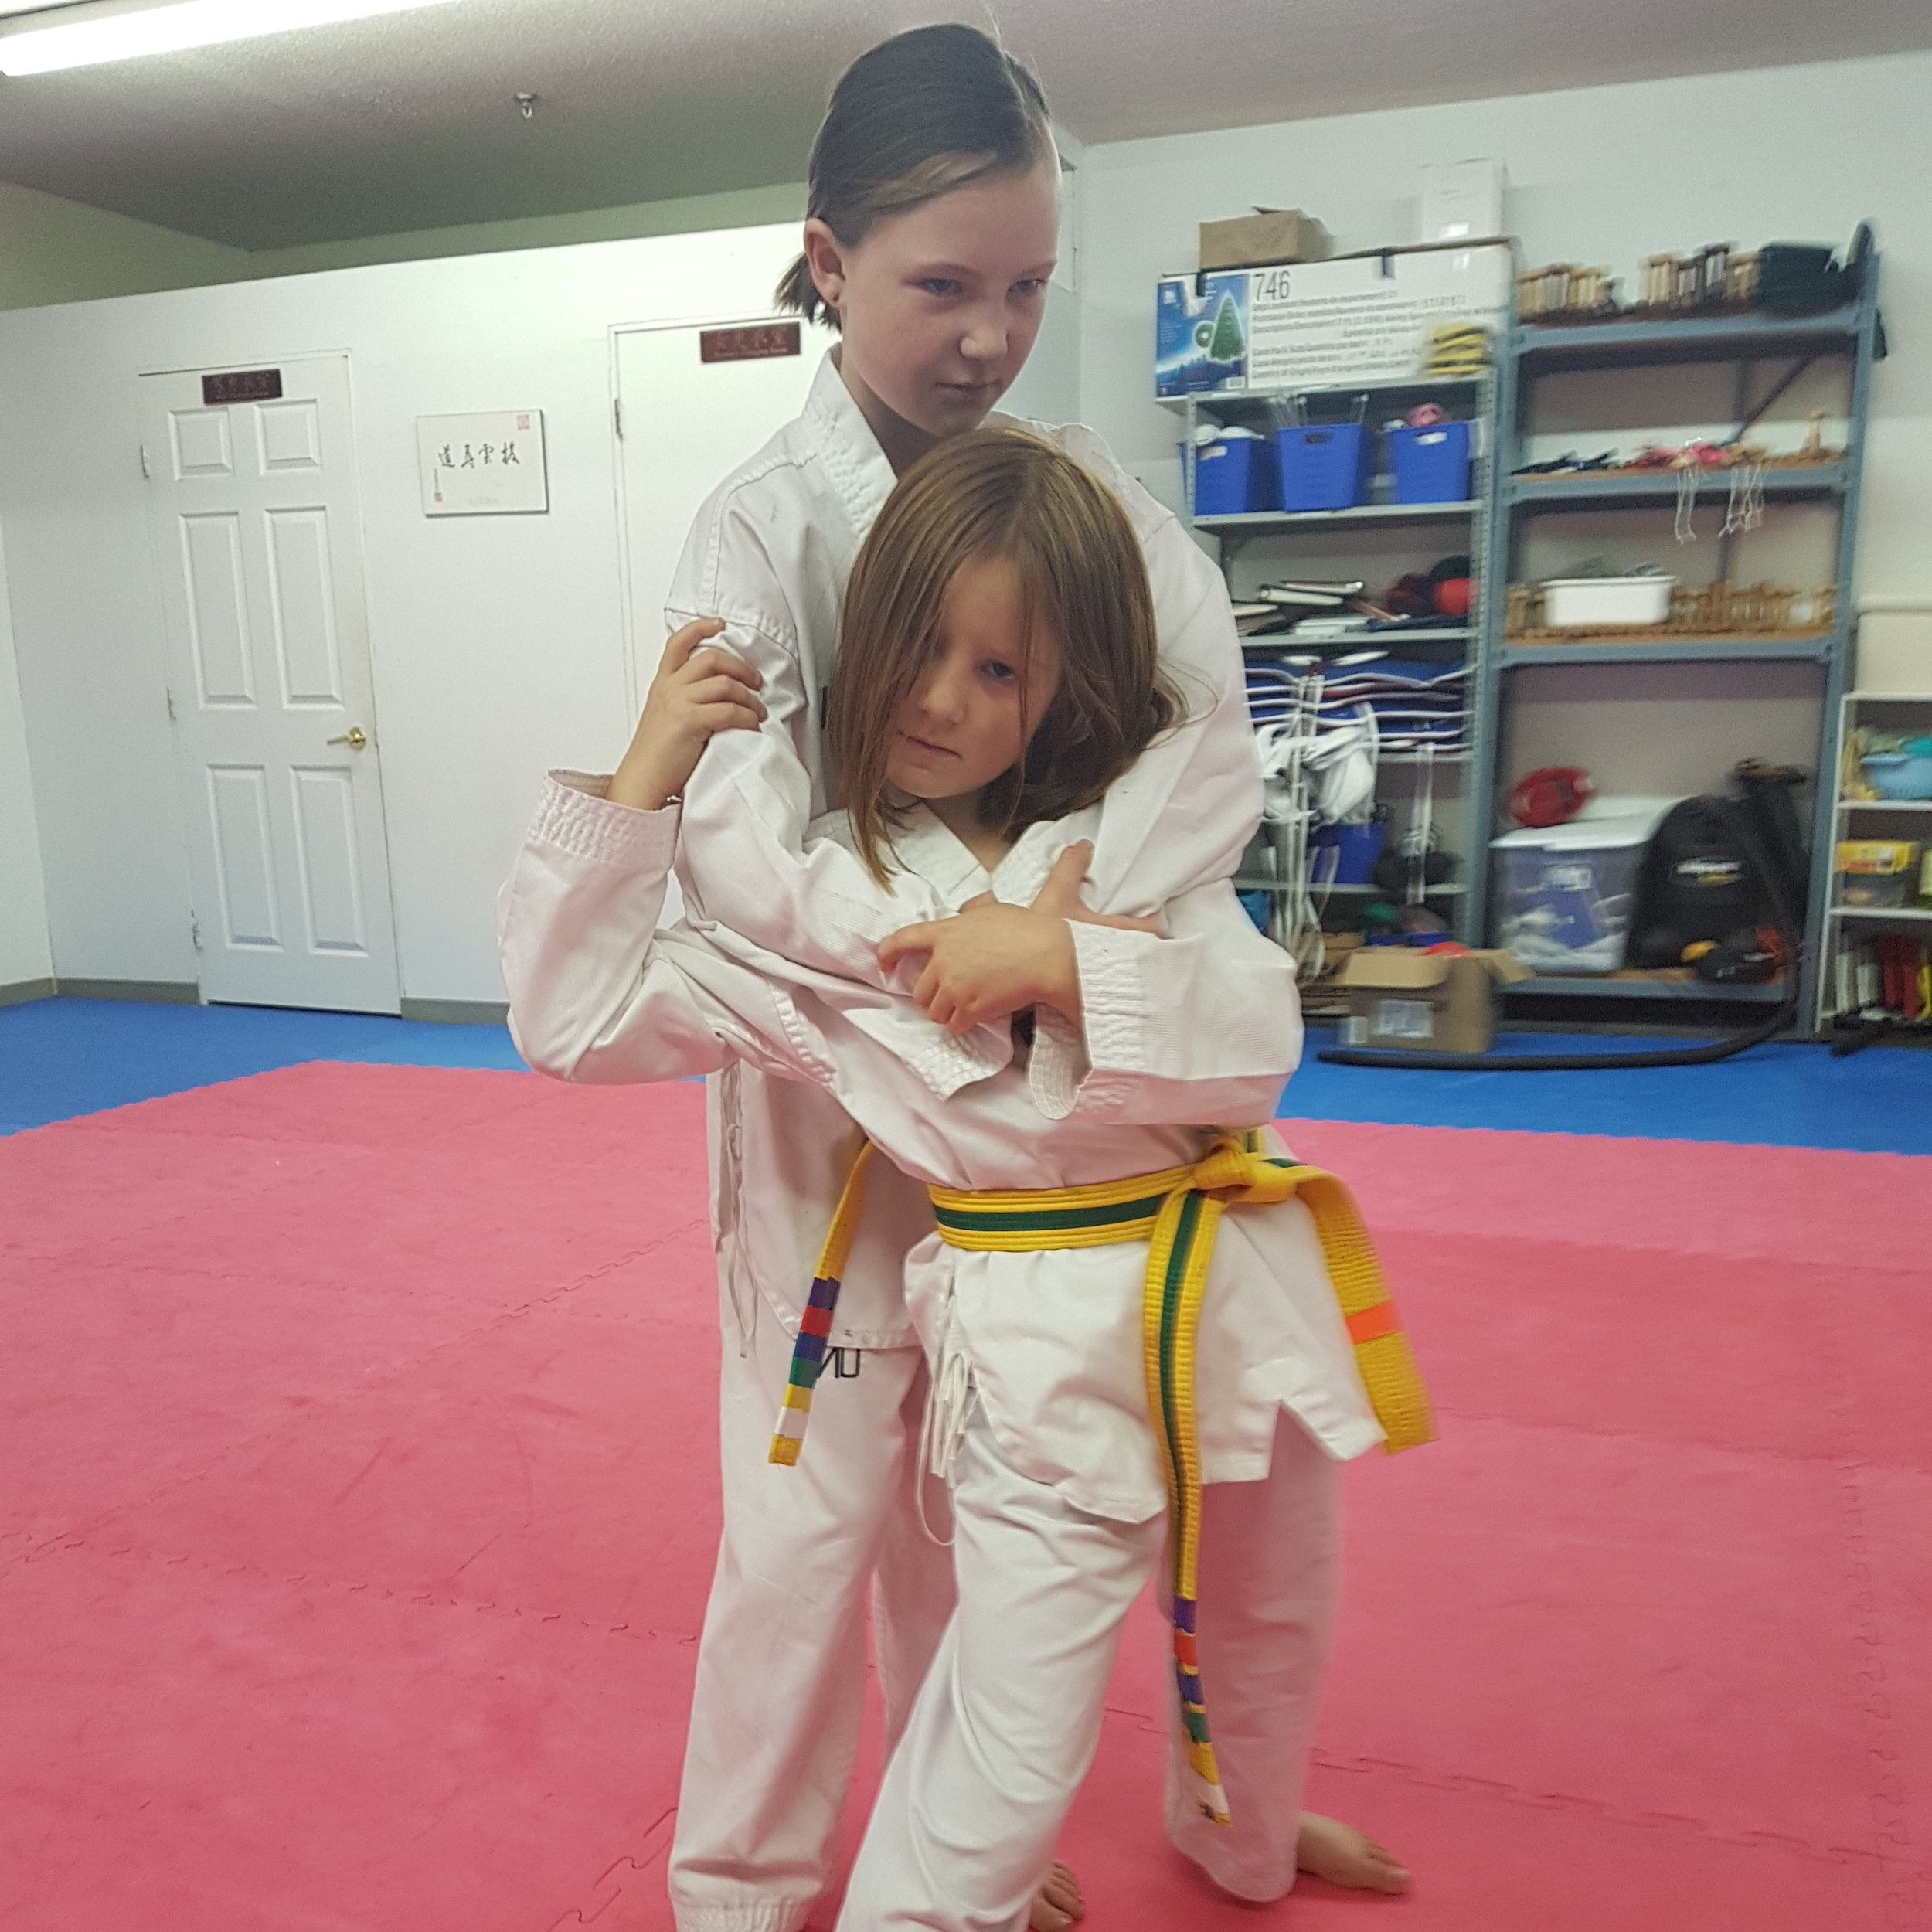 Ages 8-11 Beginner - Mon/Wed 5:45-6:30The emphasis for the 8 - 11 year old age group is on introducing martial arts as a fun activity and on fostering discipline. Our lessons focus on:Motor skills (ABCs: agility, balance, and coordination) and reaction timeListening skills and teamwork skillsAt the beginner level, we teach basic kicks and closed-hand blocks and strikes; simple reaction-based self defense; and the basics of attacking and counterattacking. Weapons training is also introduced.